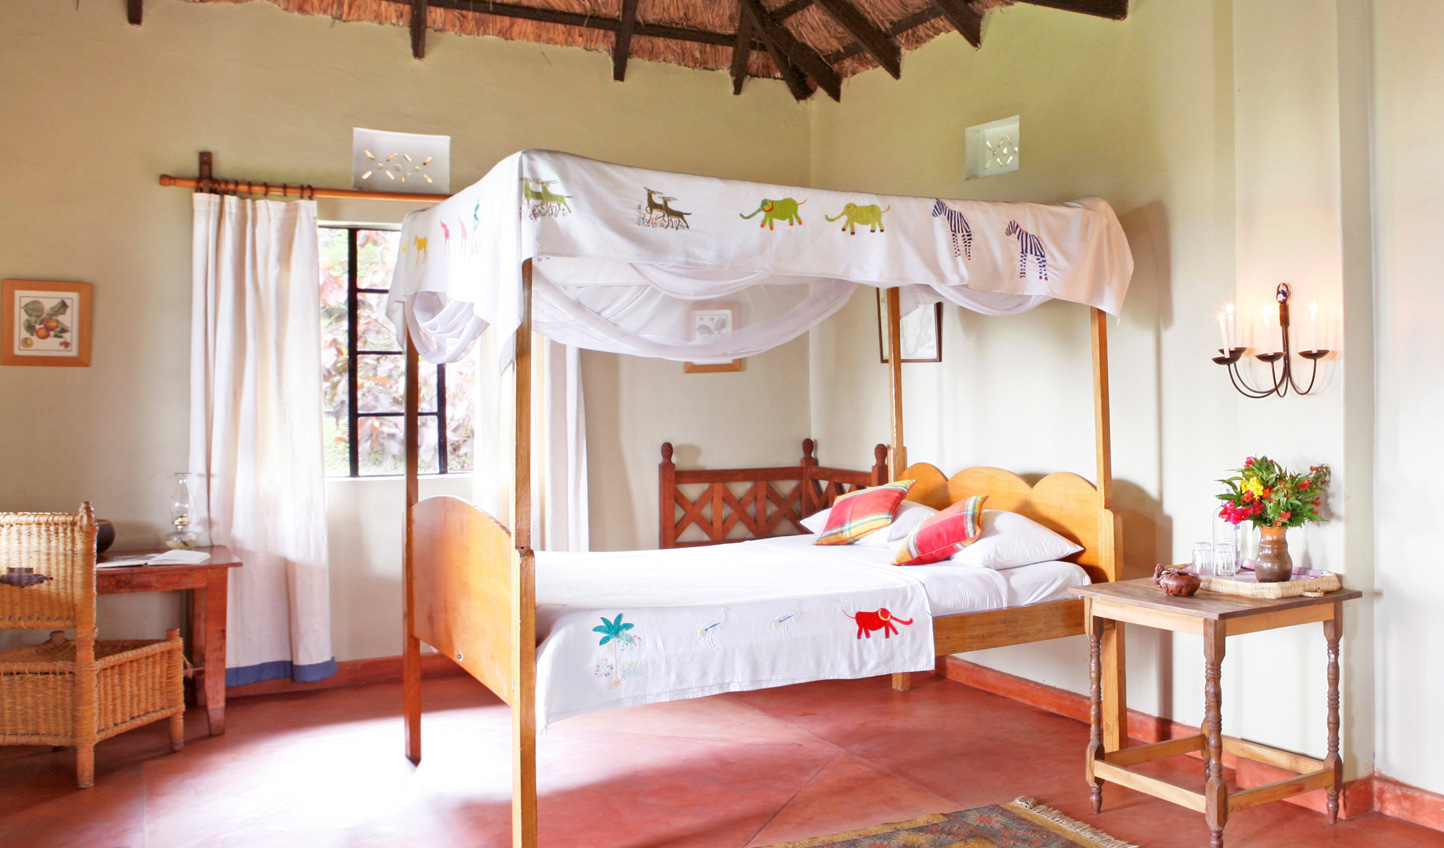 Rustic luxury in the honeymoon banda